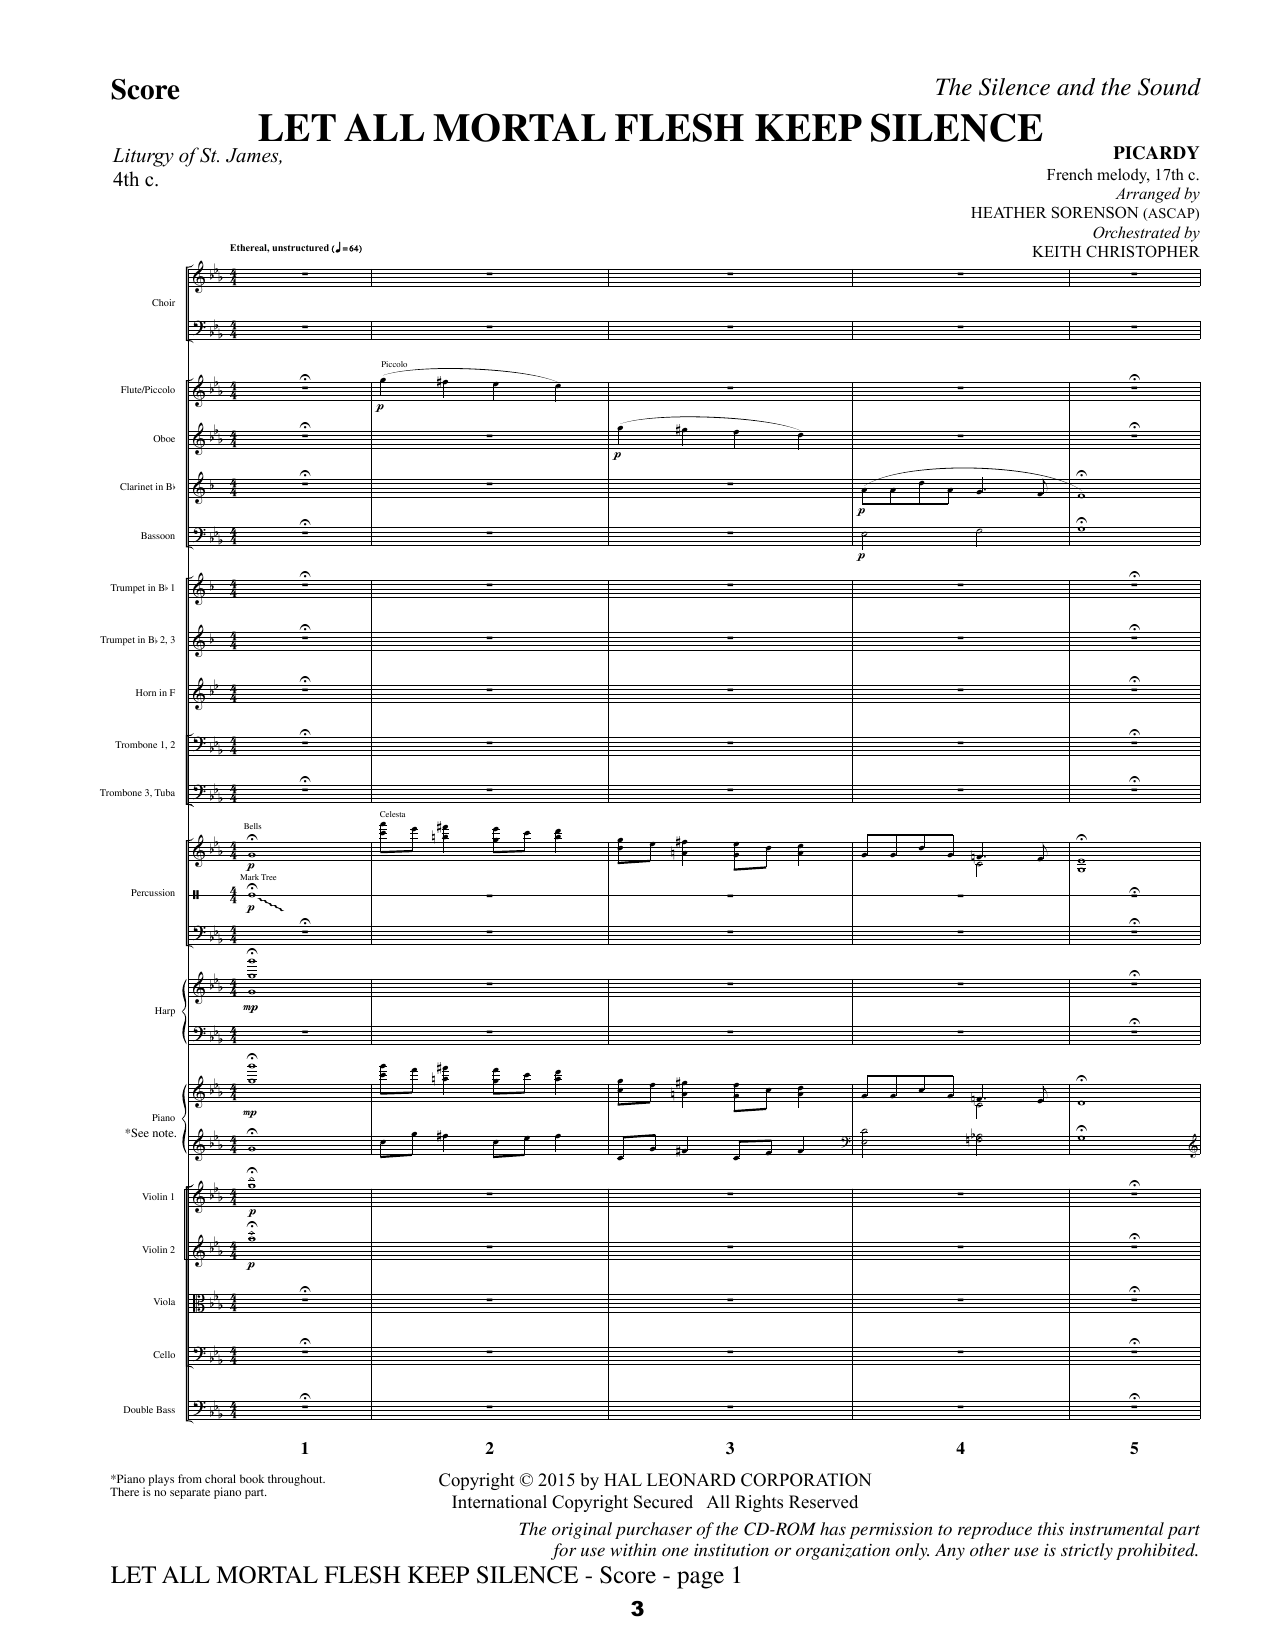 The Silence and the Sound: A Cantata for Christmas - Full Score Sheet Music